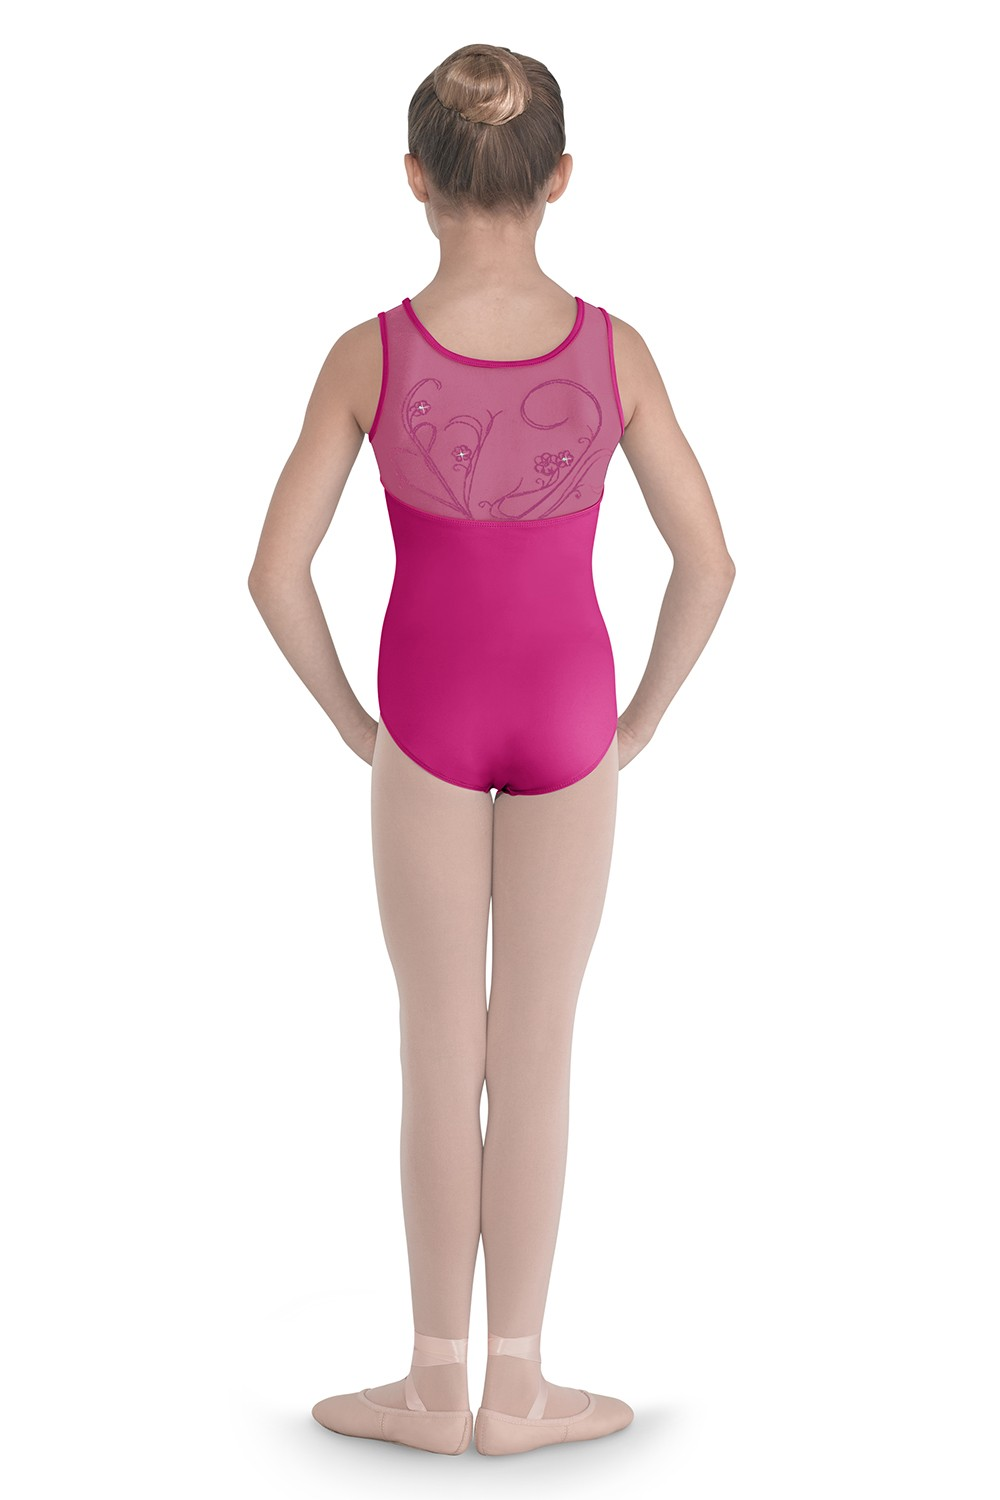 Shiloh Children's Dance Leotards